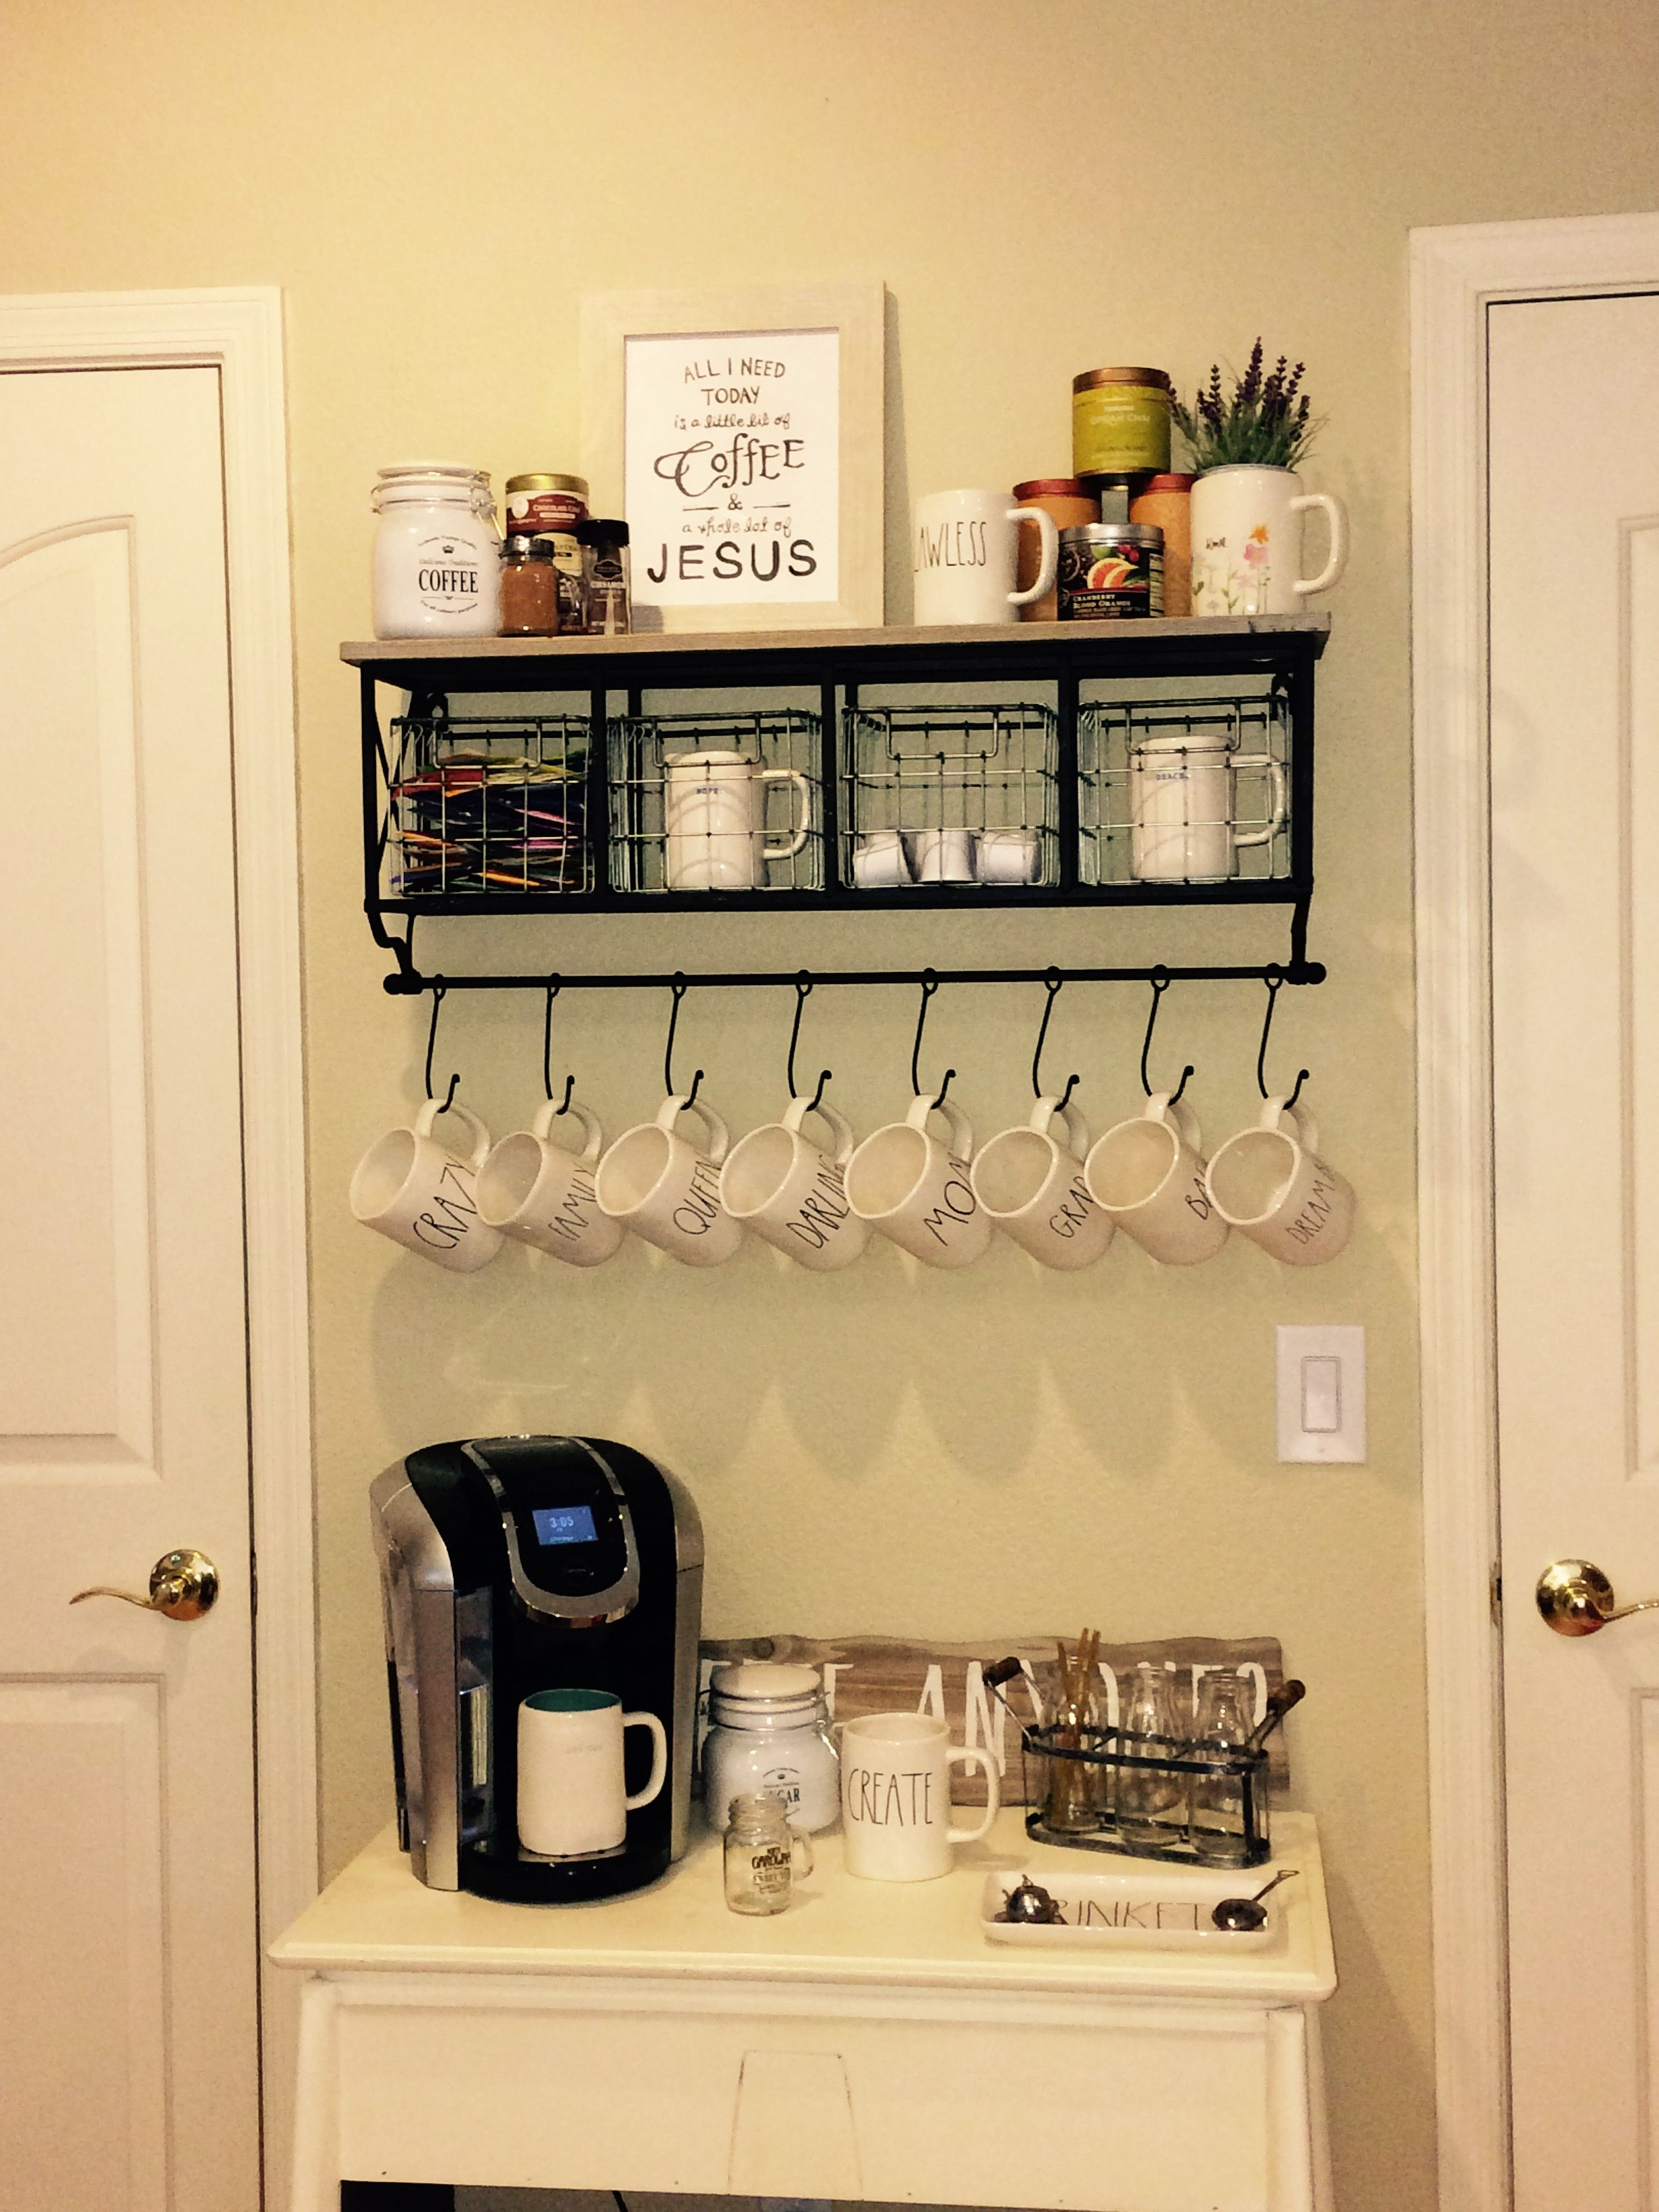 Pin by Nickie Flanders on HOME DECOR | Pinterest | Coffee, Bar and ...